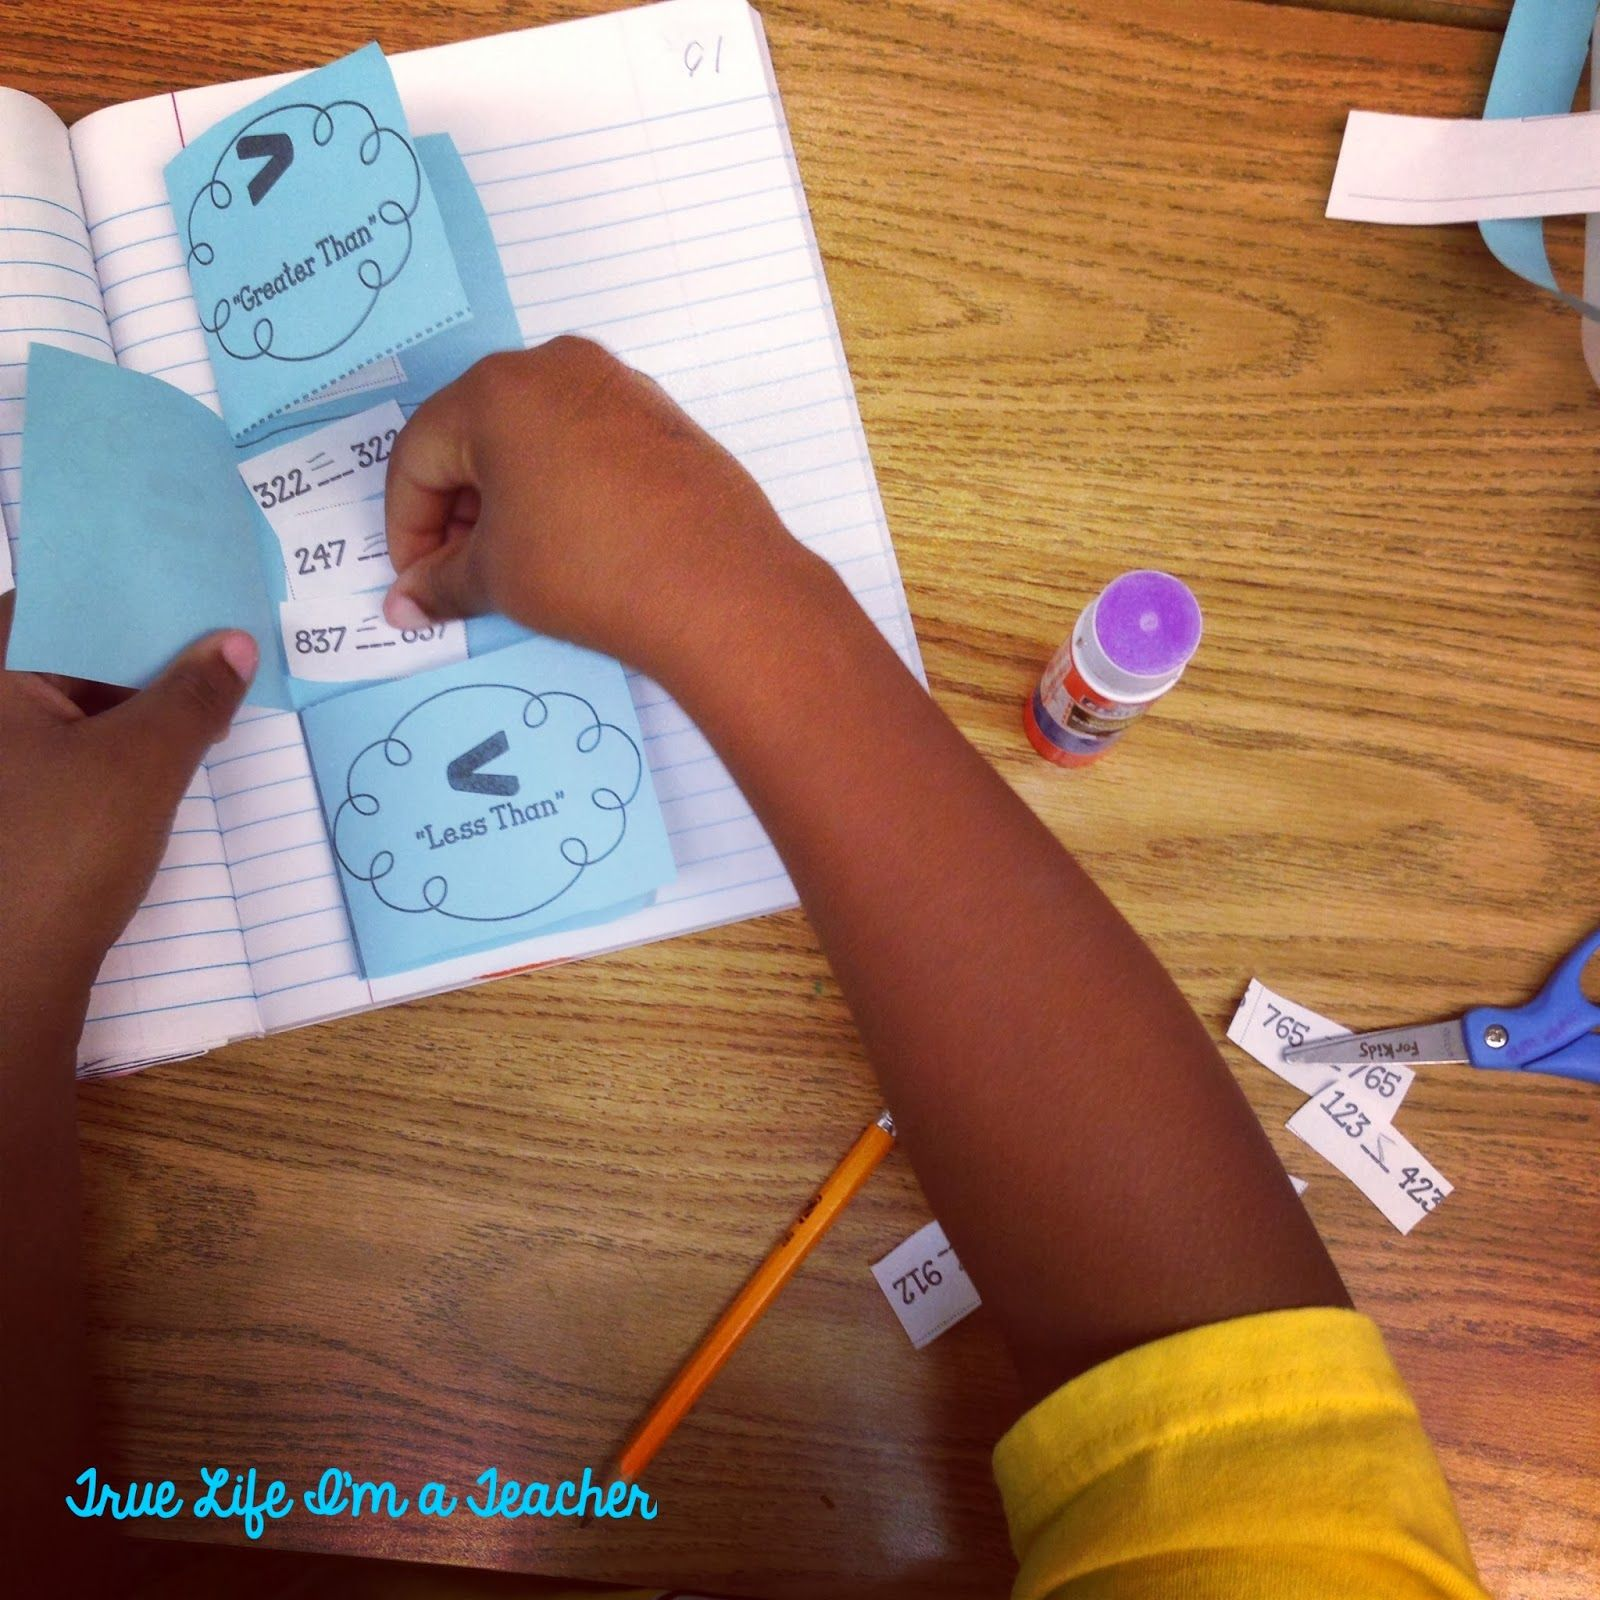 See how my students practiced comparing 3-digit numbers in their interactive math notebooks.